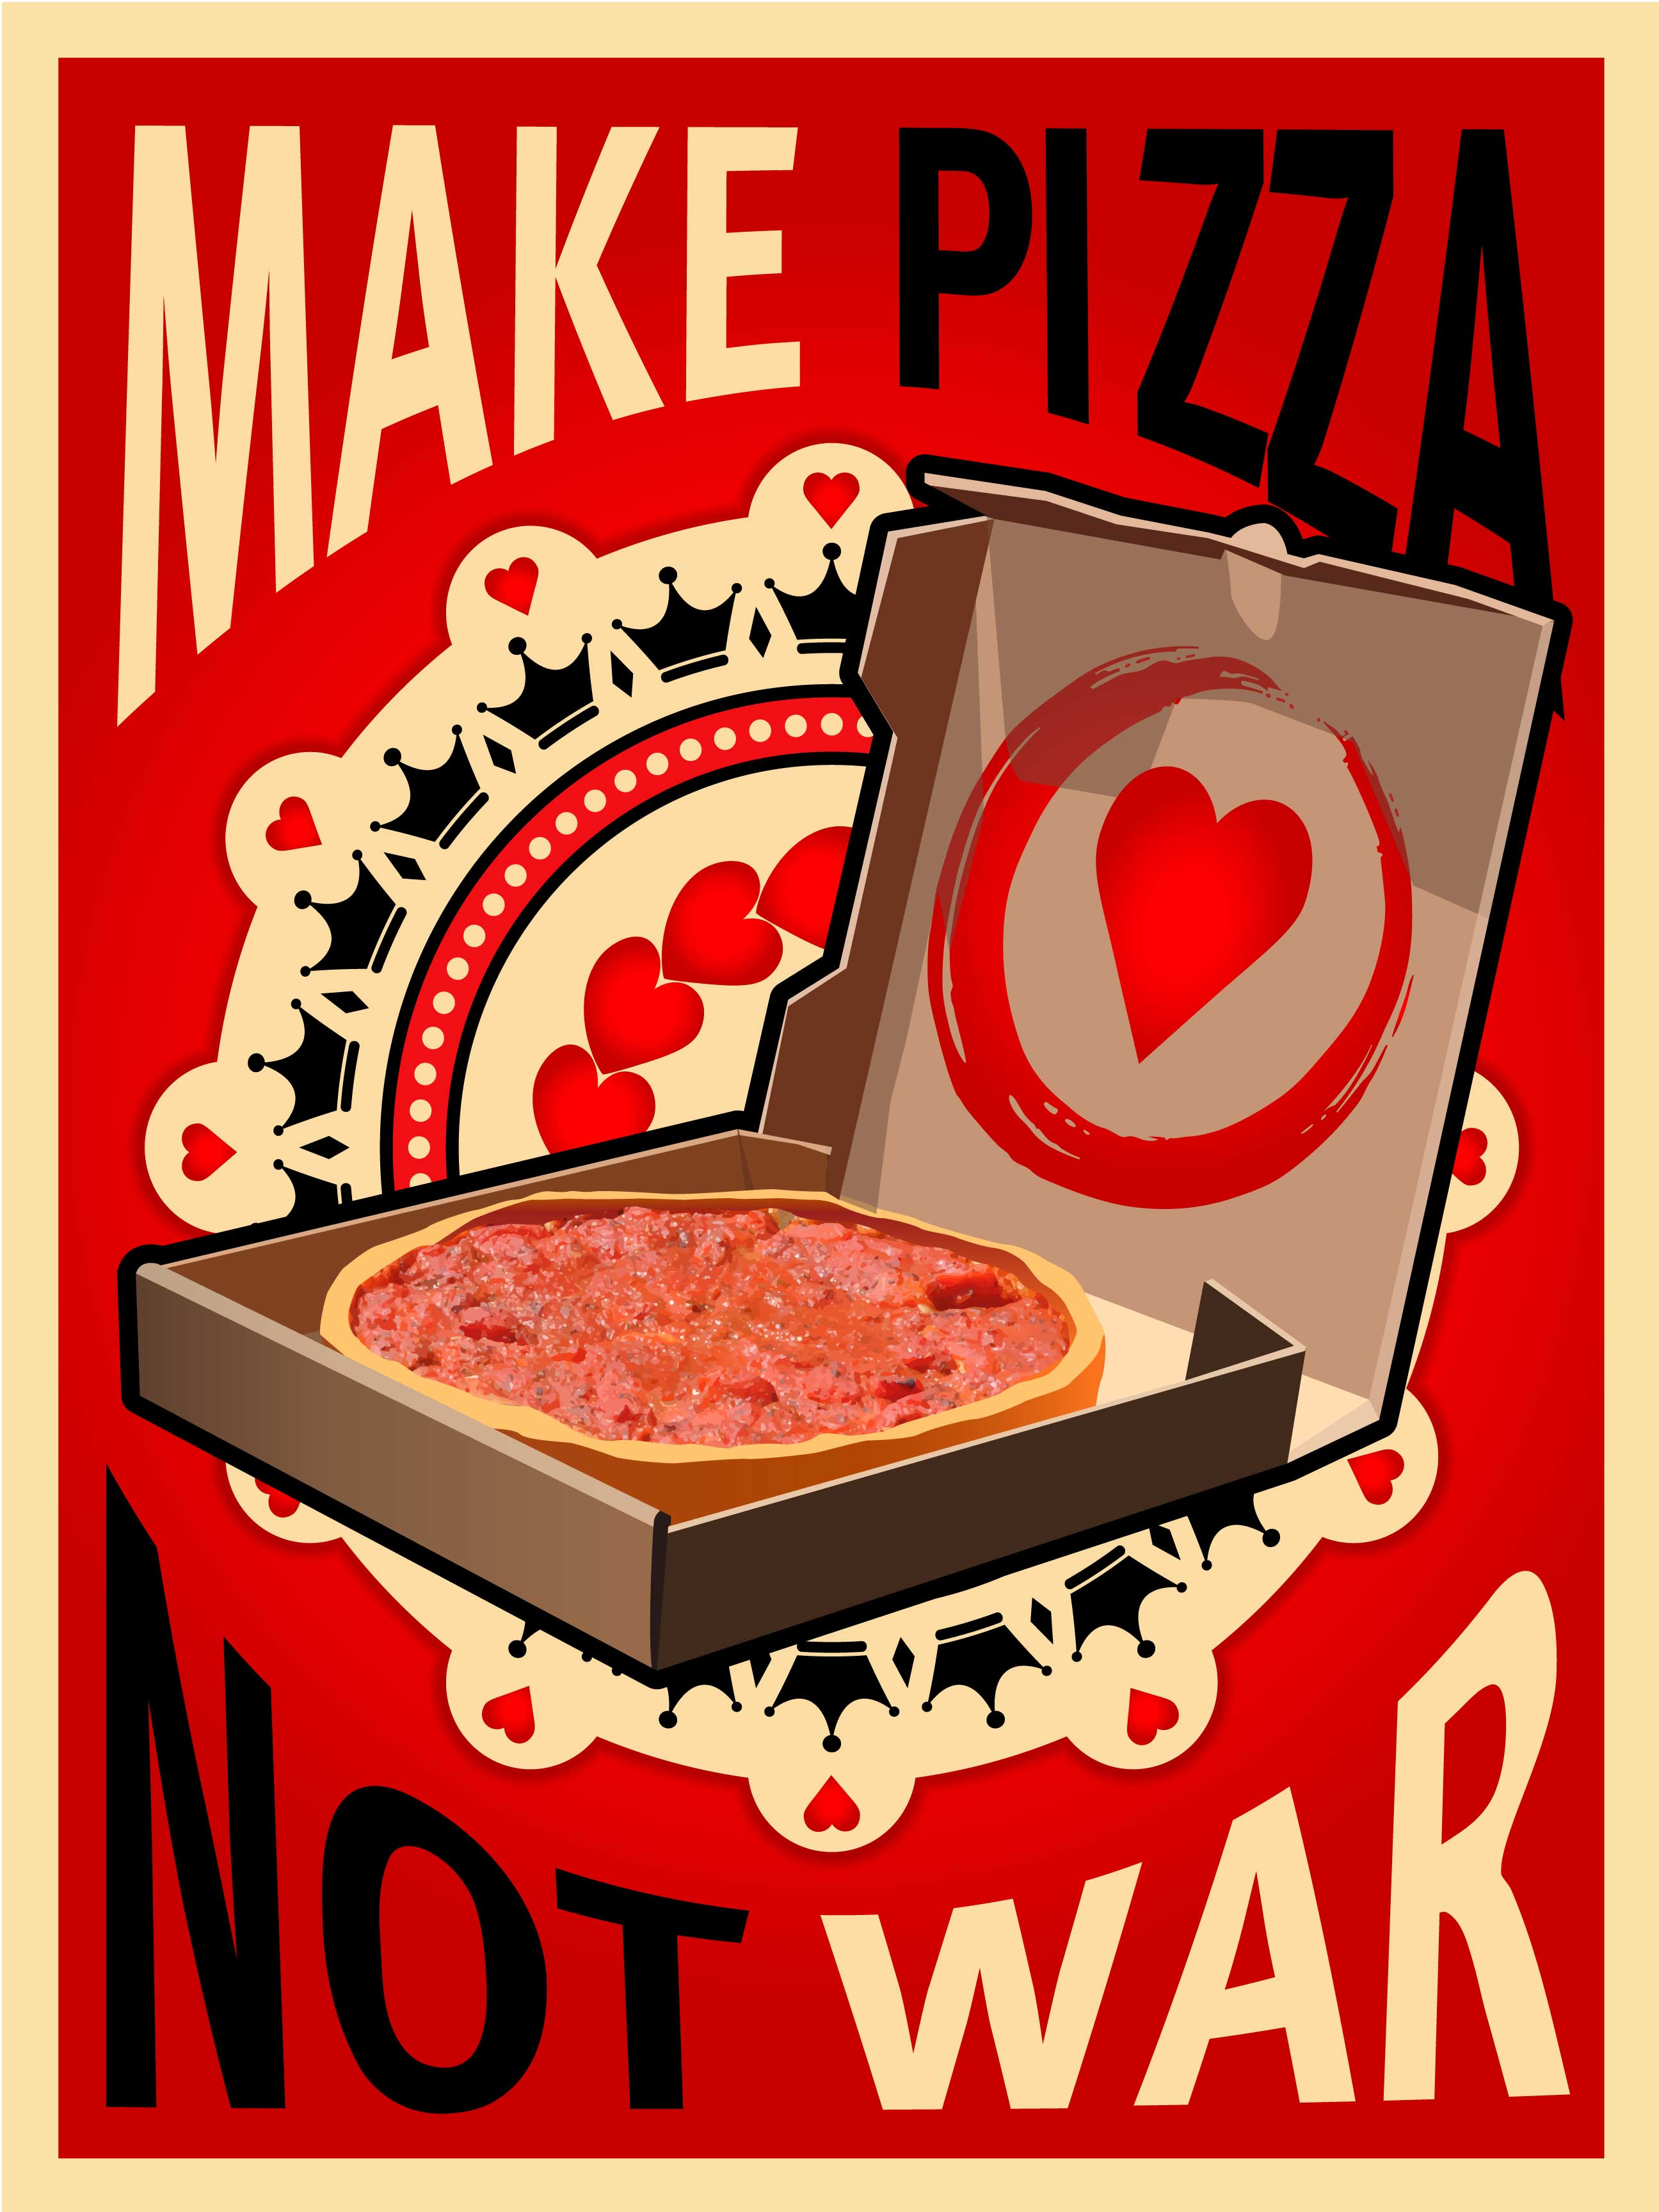 Zachary S Chicago Pizza Art Contest East Bay Area S